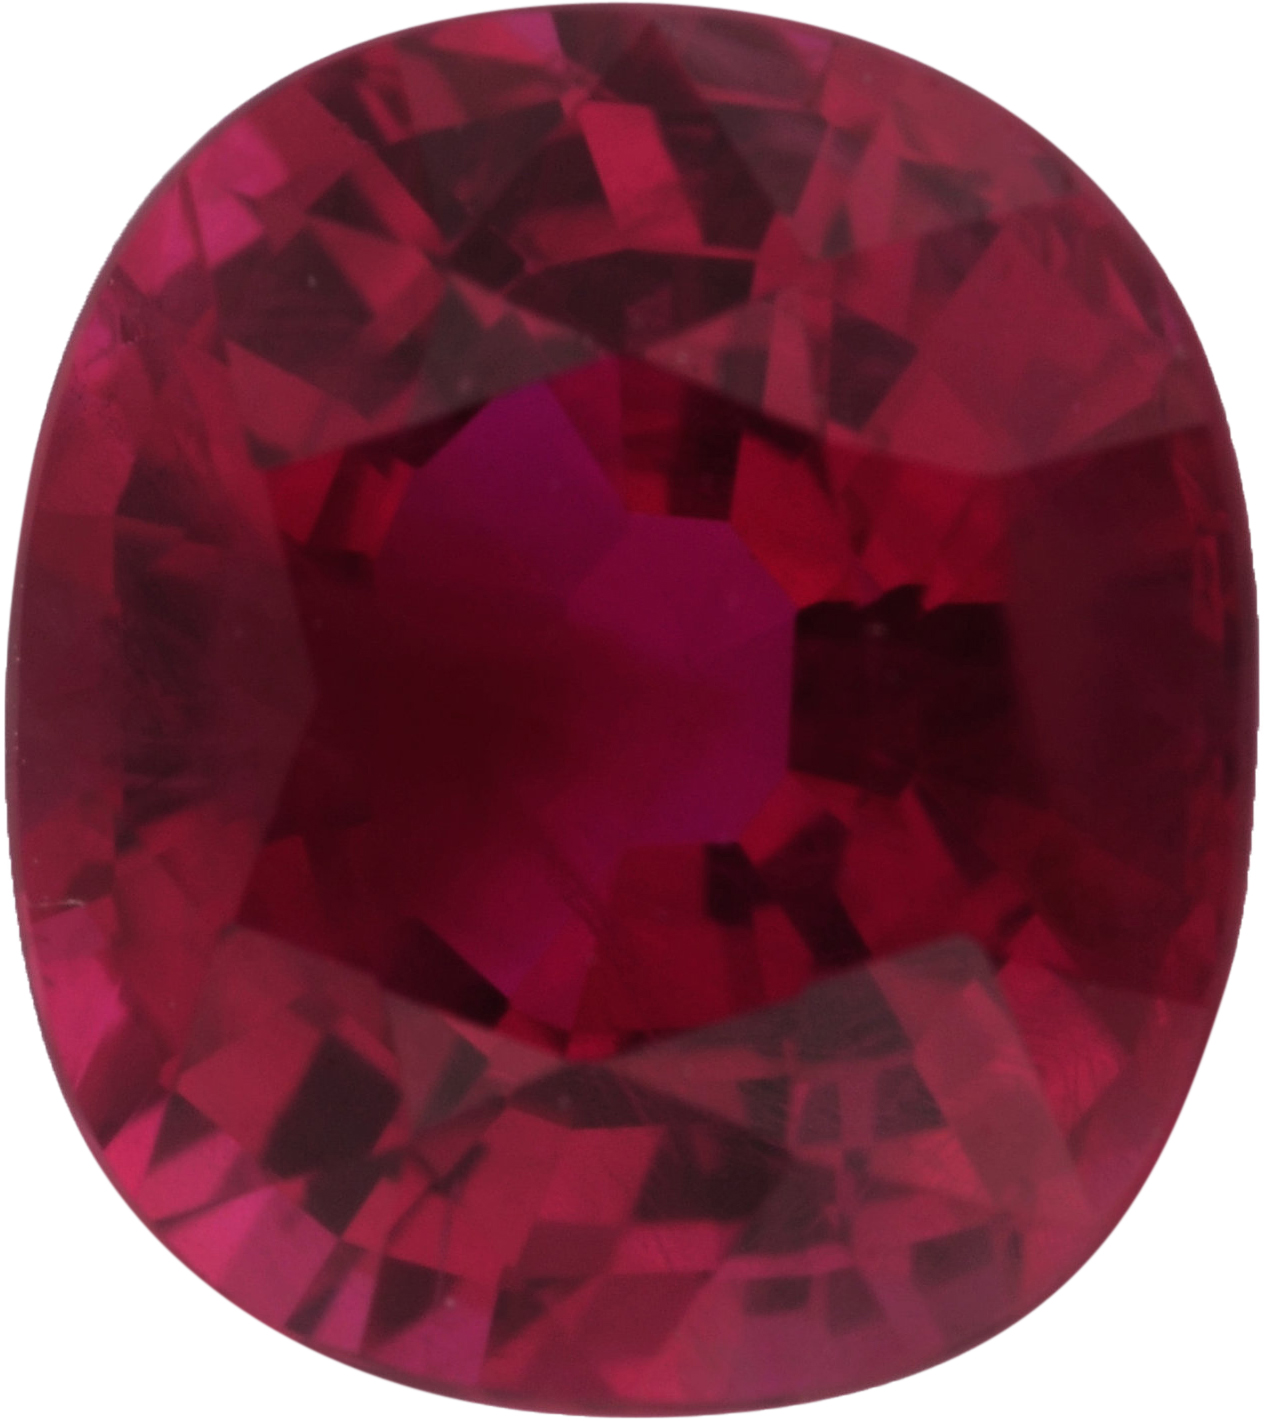 1.36 carats Ruby Loose Gemstone in Antique Cushion Cut, Brownish Red, 6.67 x 5.96 mm